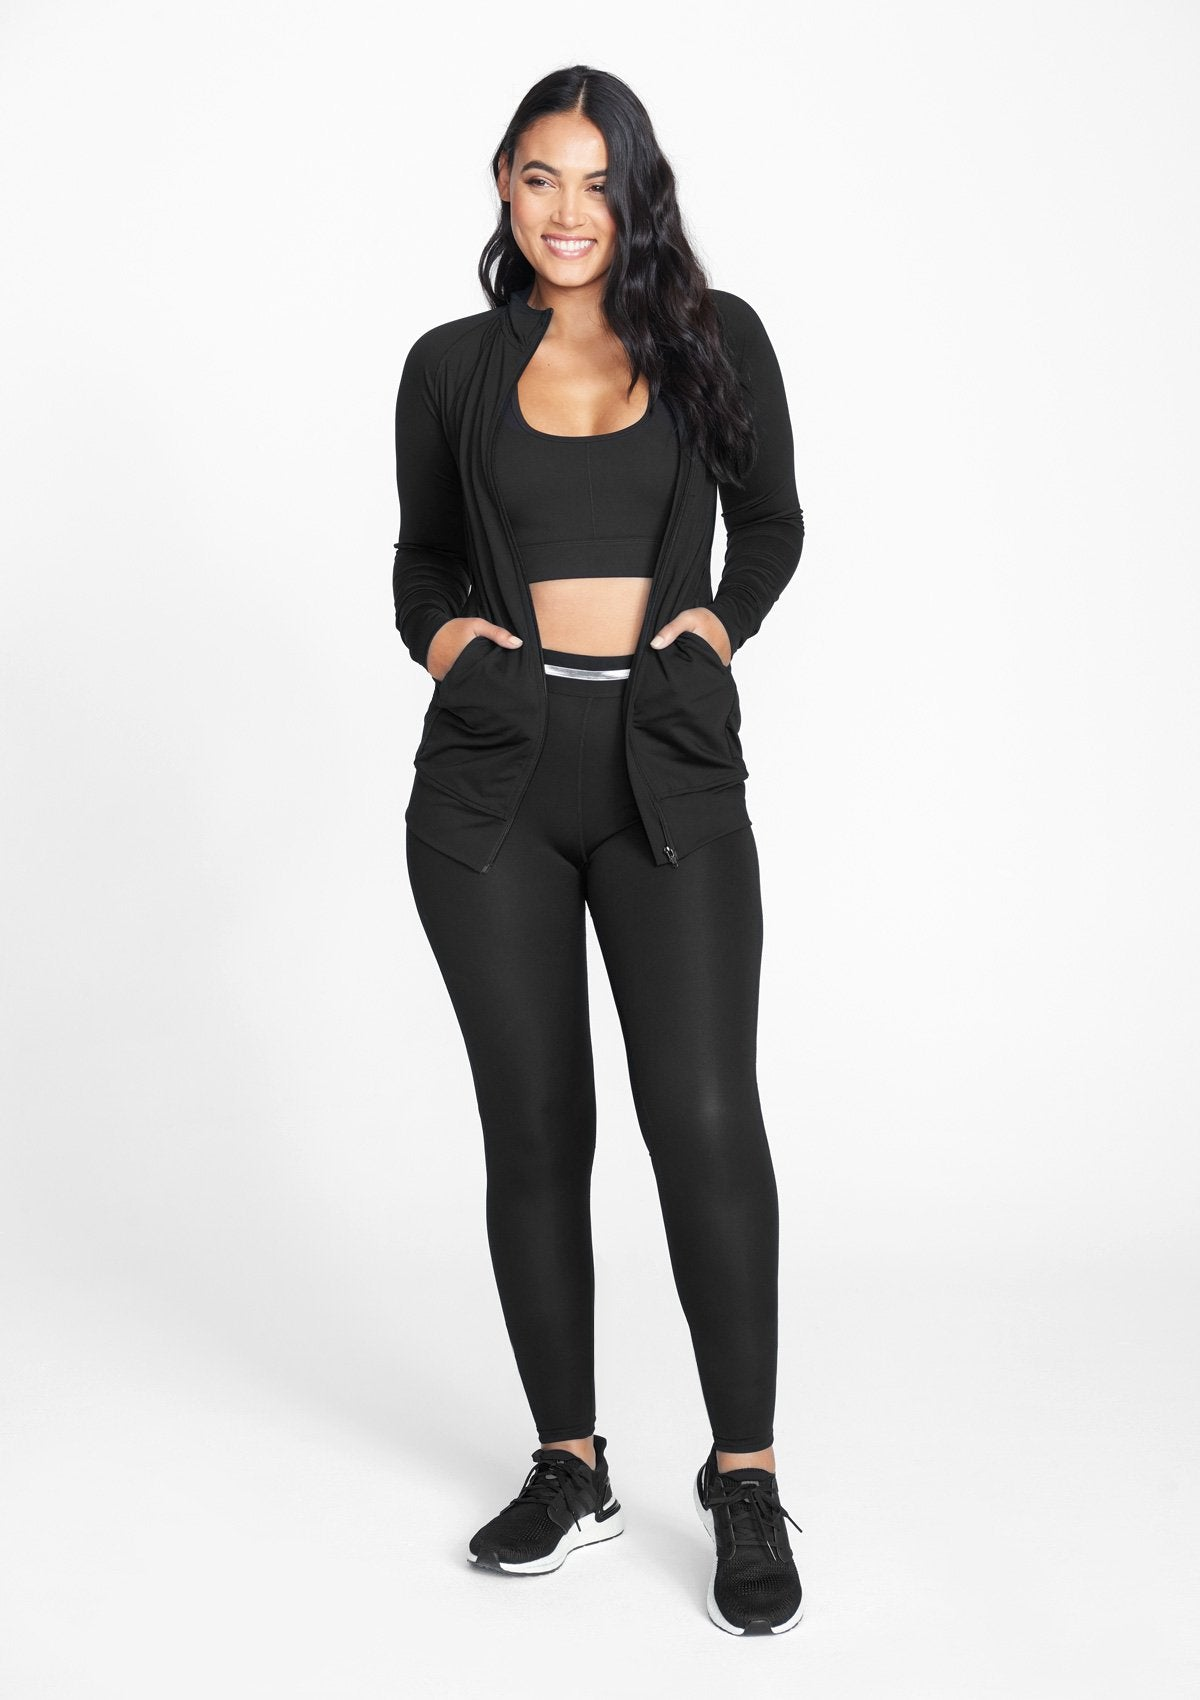 Alloy Apparel Tall Active Leggings for Women in Black Size S length 36   Polyester